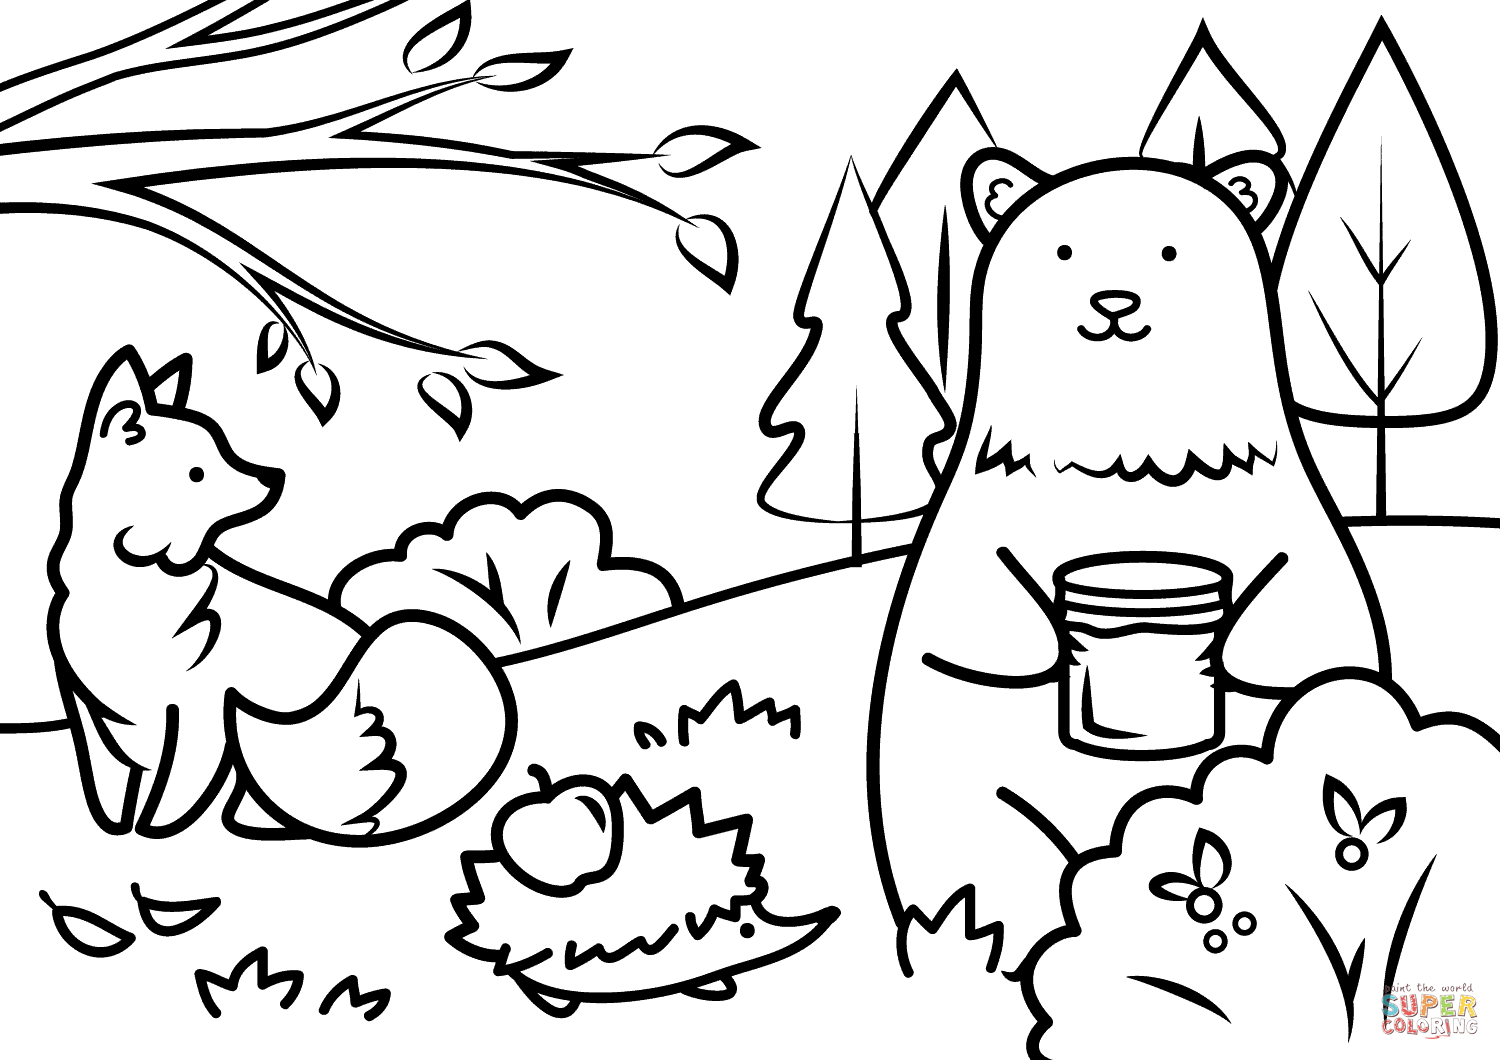 Autumn Animals Coloring Page | Free Printable Coloring Pages - Free Fall Printable Coloring Sheets